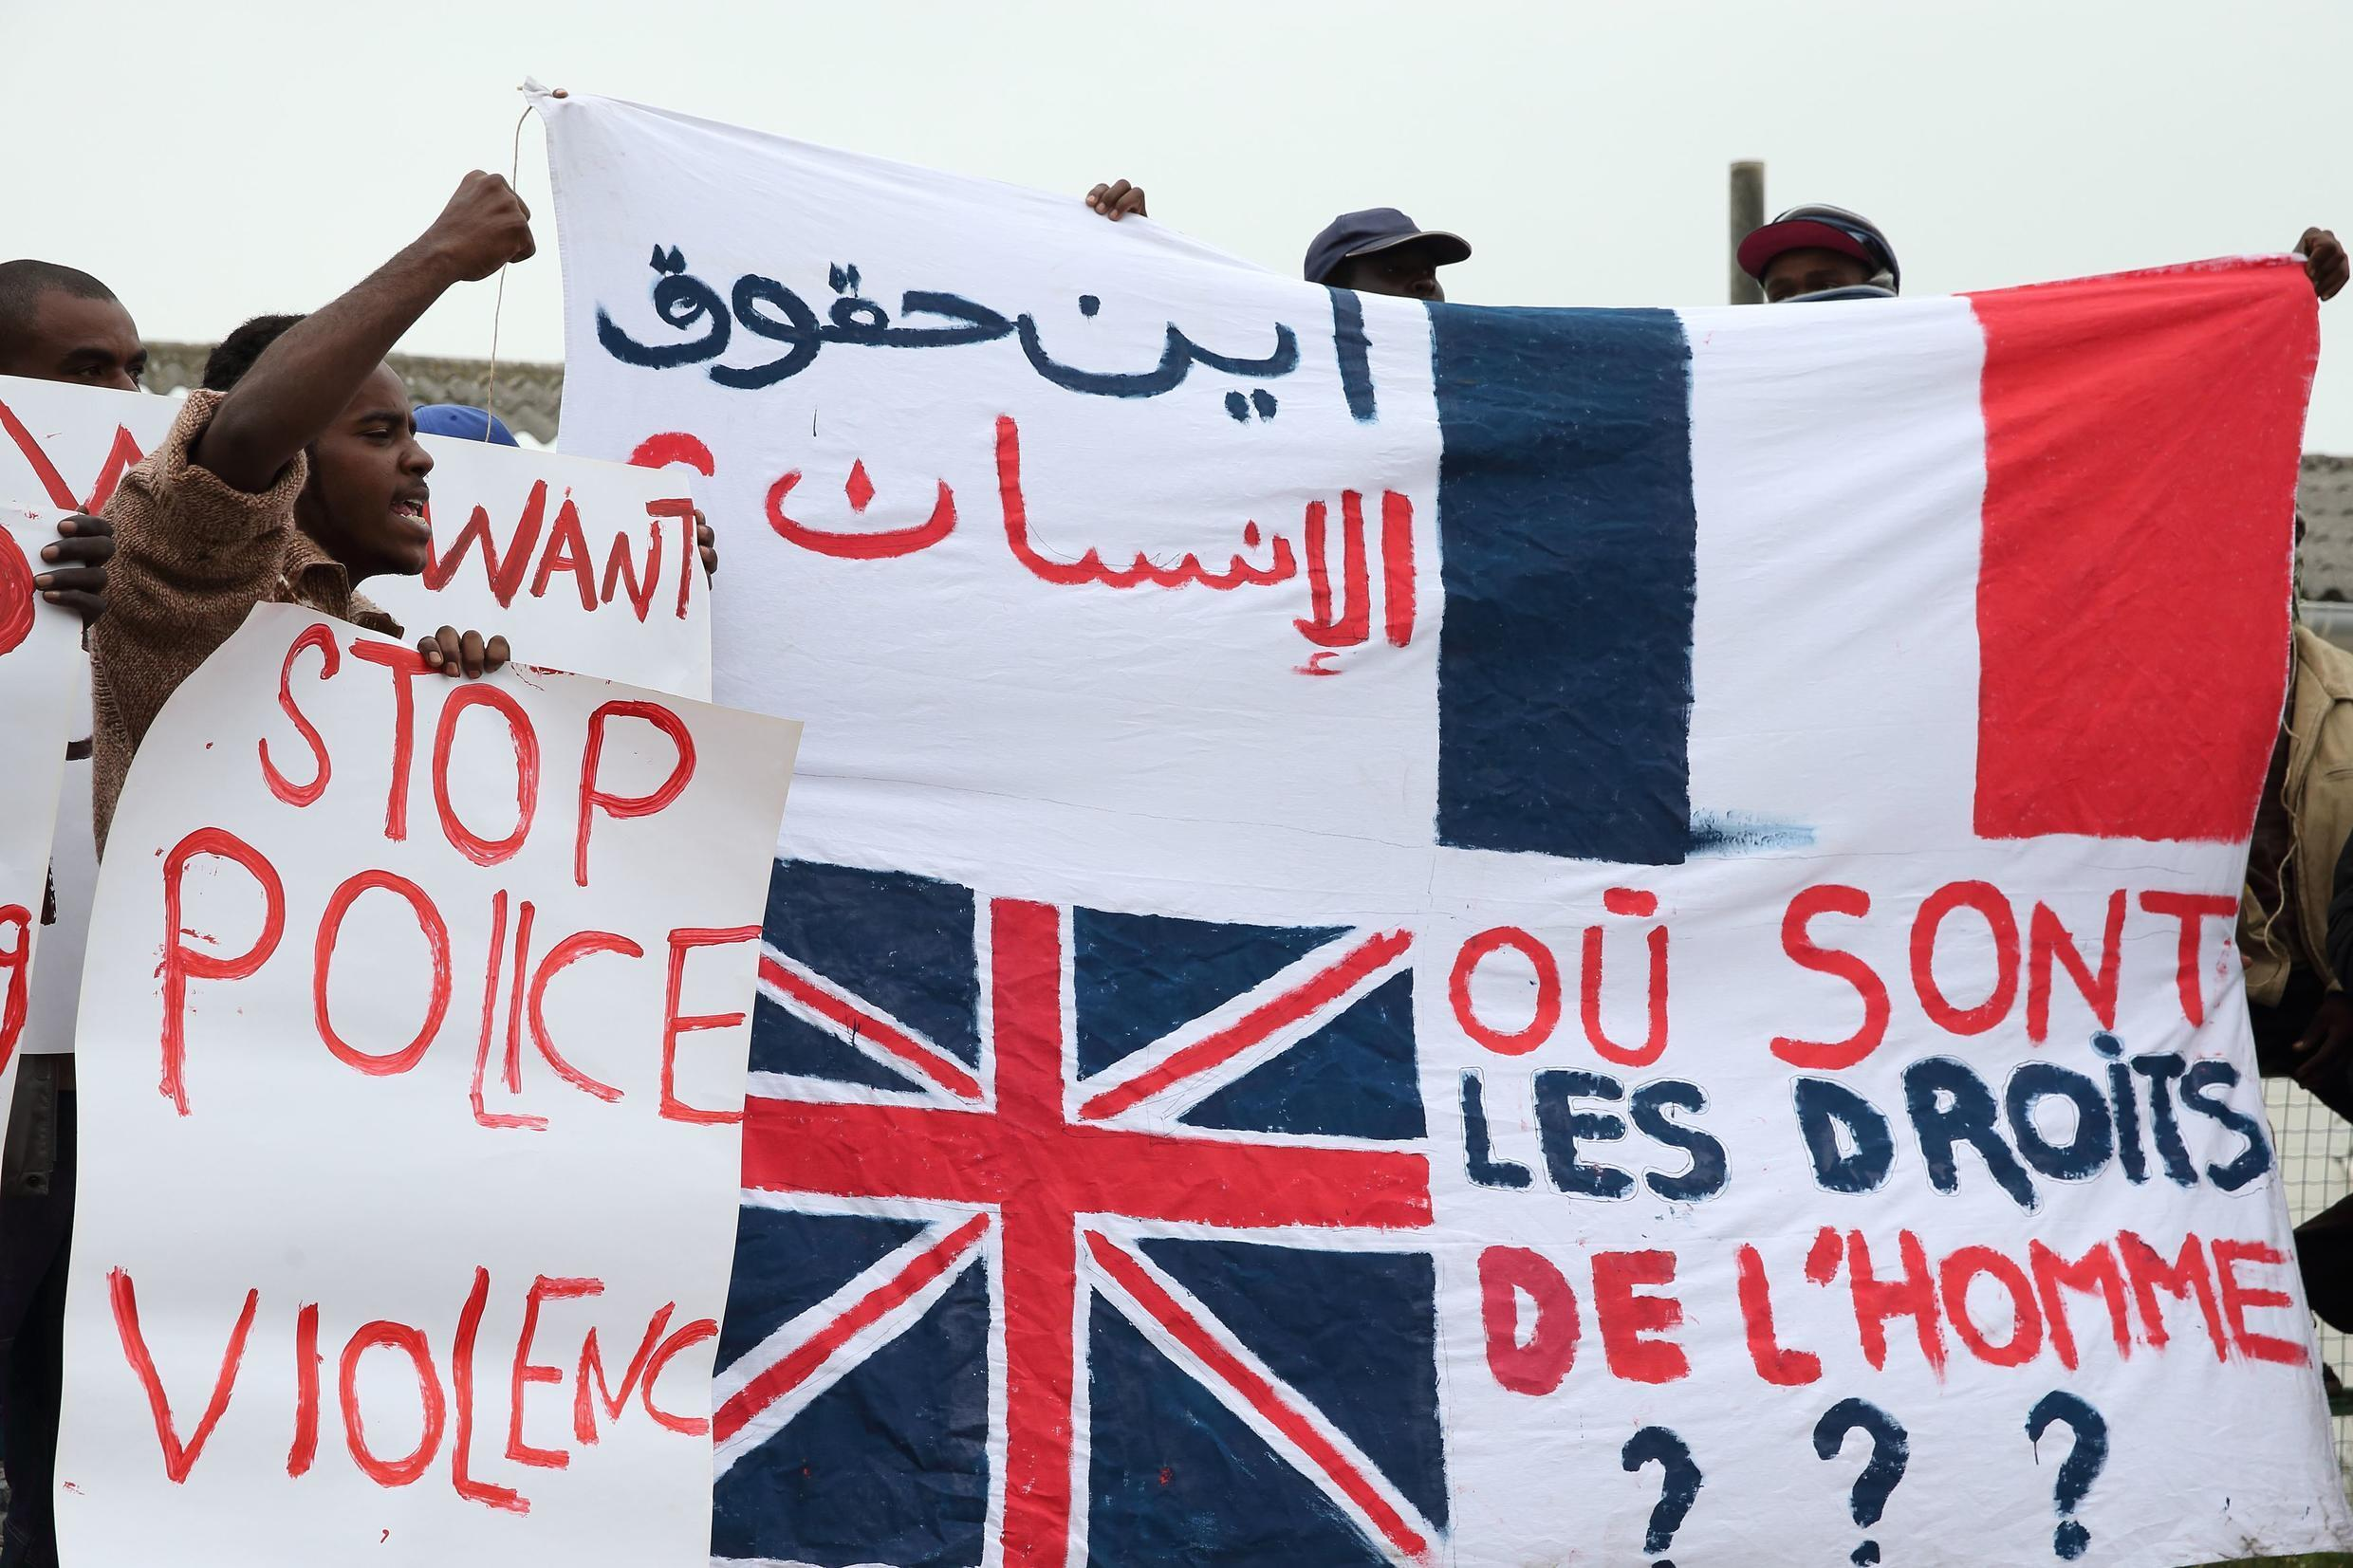 Migrants from Africa demonstrate in front of the Calais town hall earlier this month